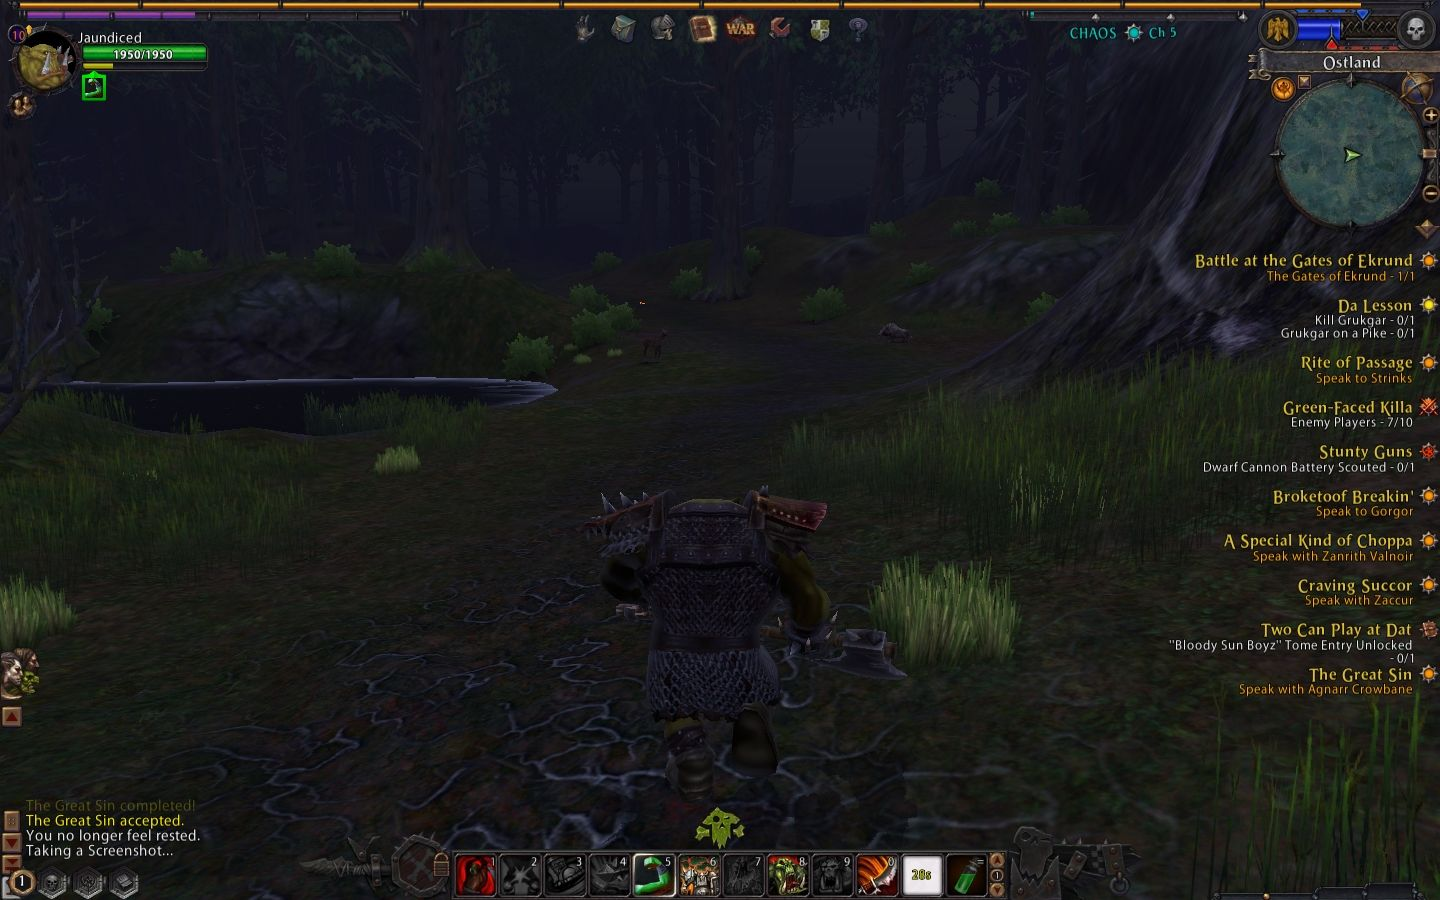 Warhammer Online: Age of Reckoning Windows Typical graphic settings to avoid play prohibitive slowdowns.